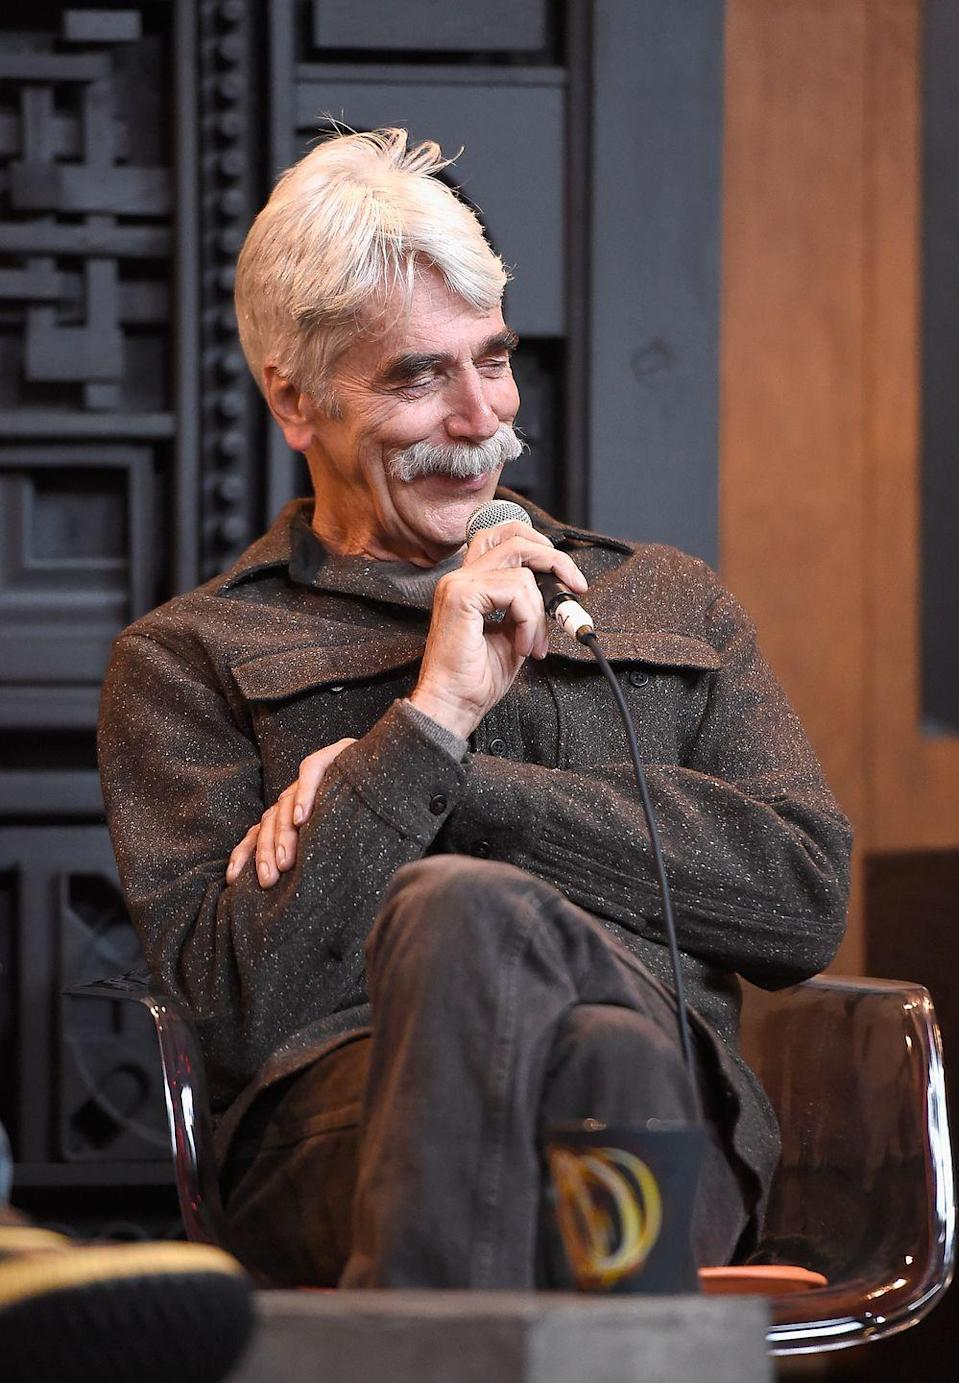 <p>When it comes to men with mustaches, you really can't get more iconic than Sam Elliot. His bushy whiskers have changed shape and color over the years, but even his current gray look commands attention. This is truly a classic in the pantheon of upper lip hair. </p>